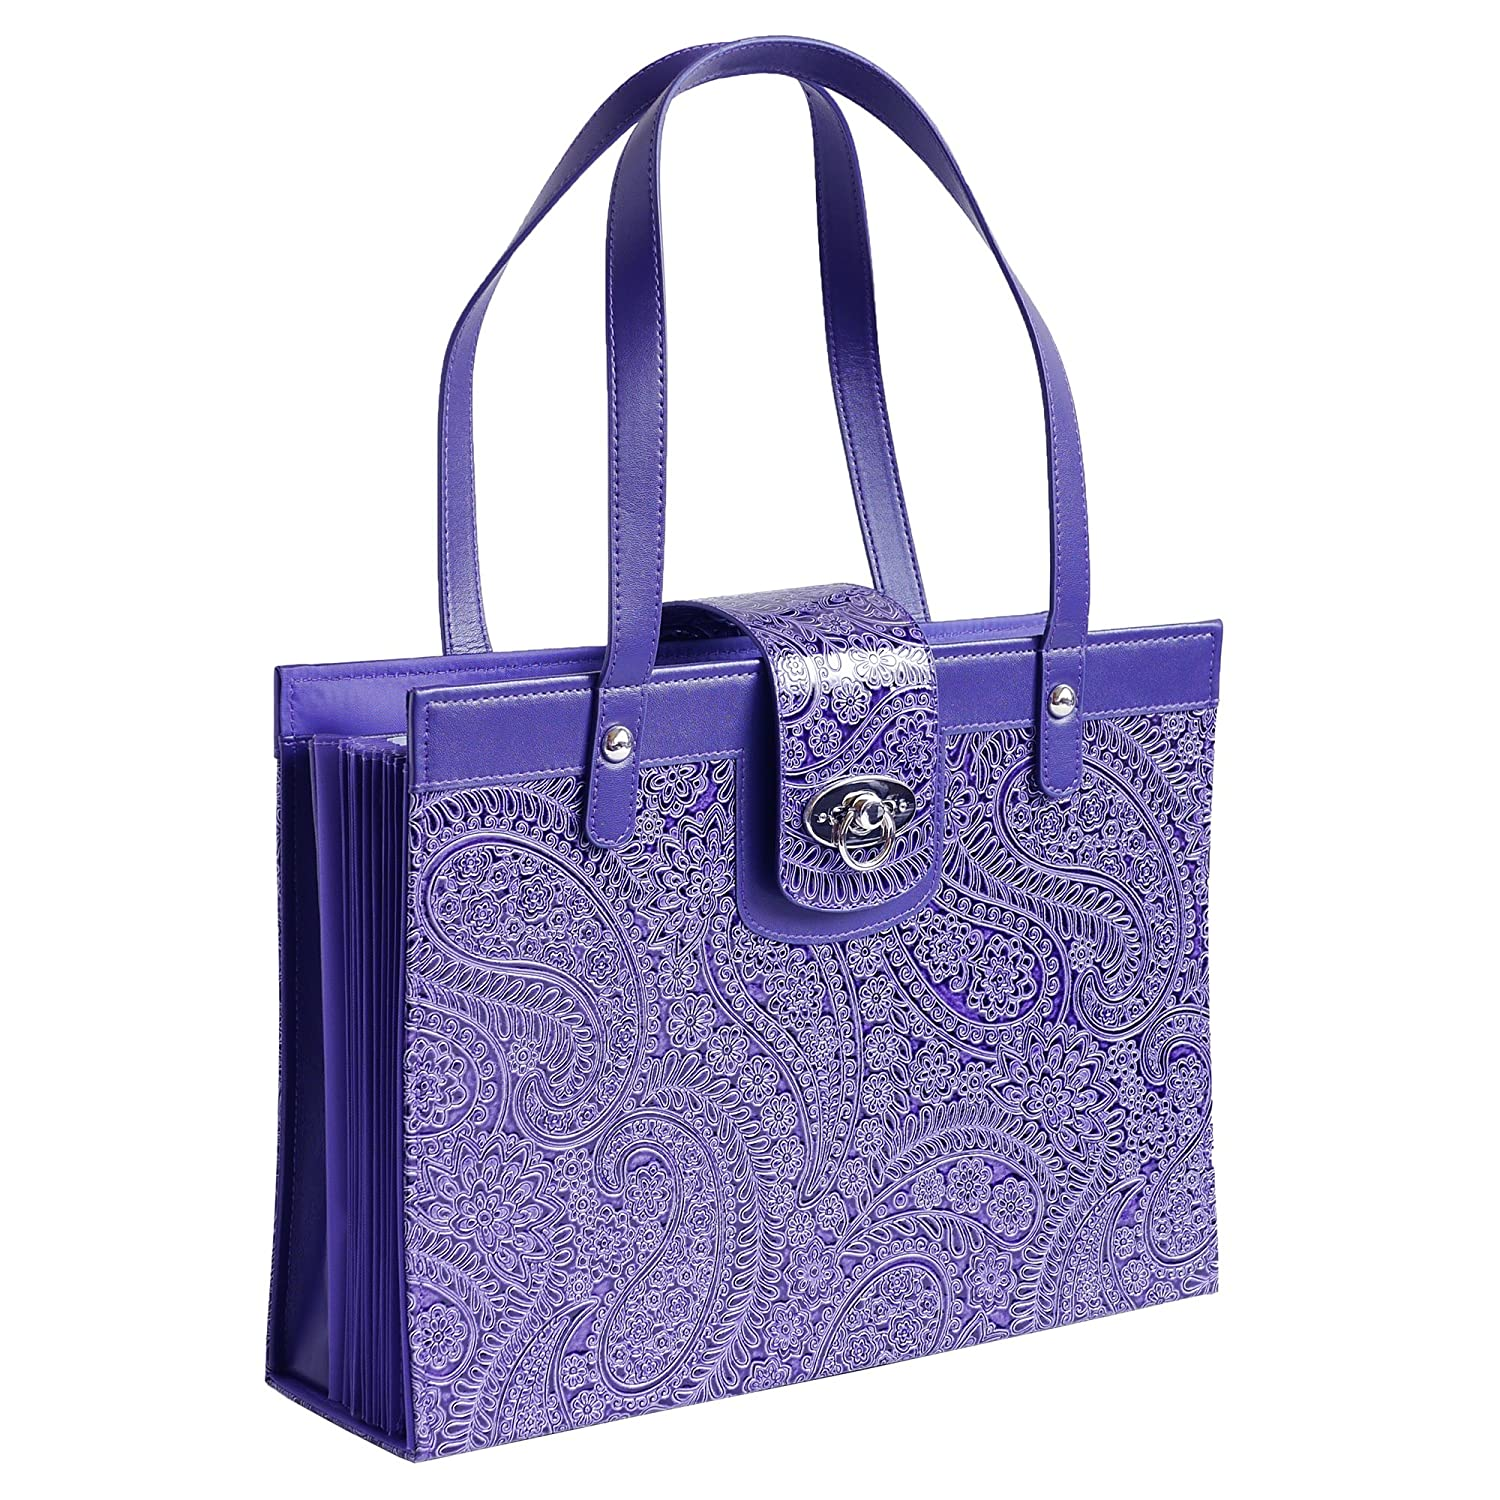 Fashion Embossed Paisley Flower File Organizer Tote with Classy Purple Faux Leather